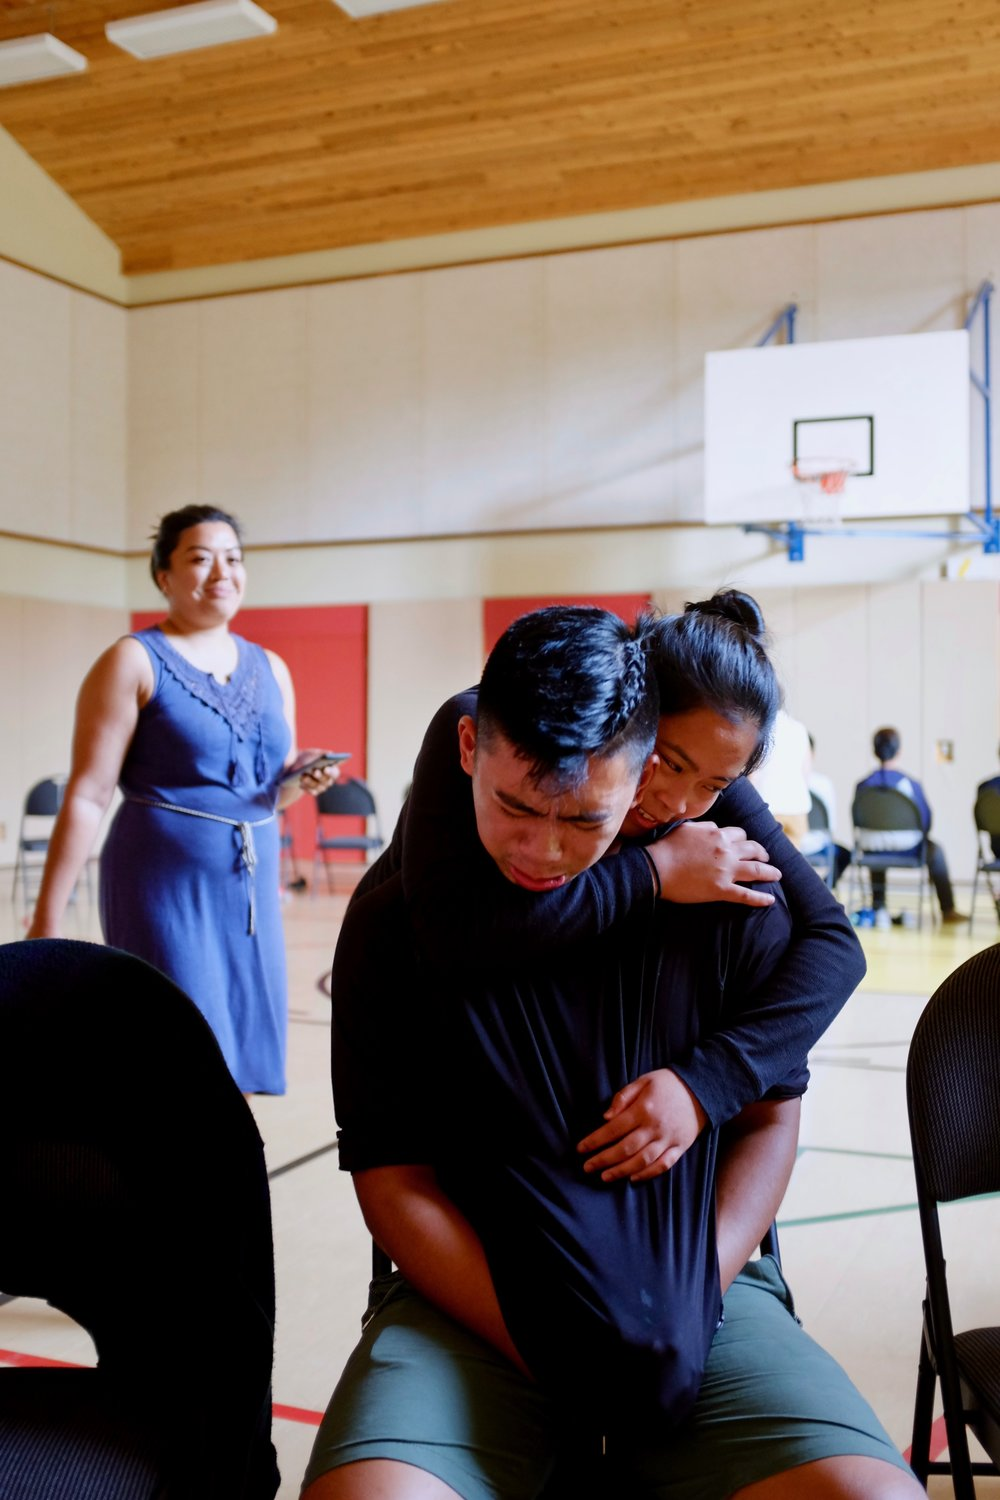 Mentor M-jay Frias hugged by mentee (and sister) Mica as facilitator Monica Batac looks on. Photo by J. Austria.